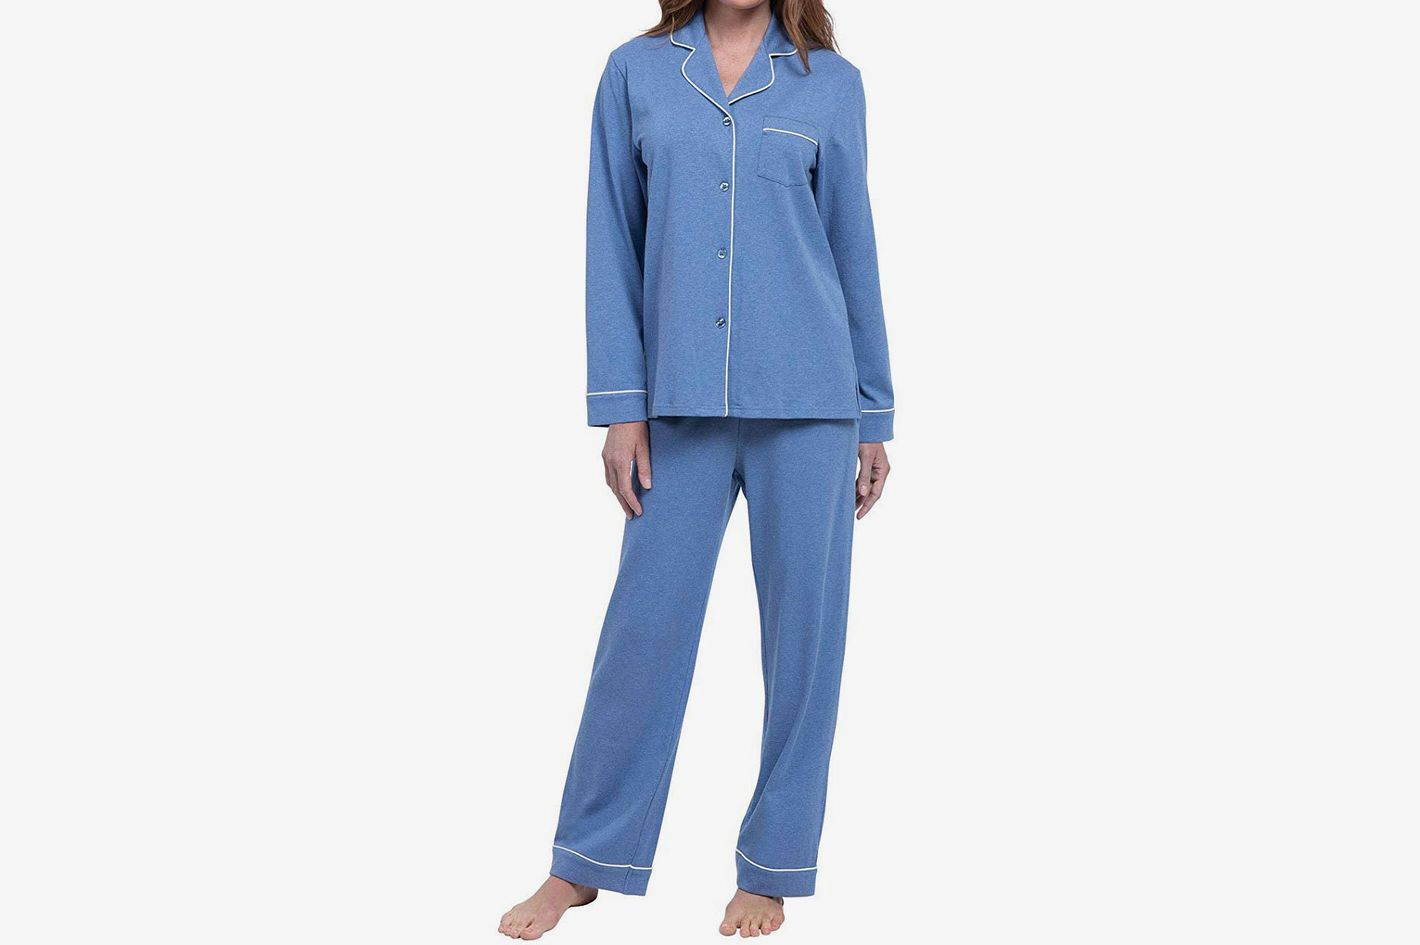 c566a6052d6 PajamaGram Pajamas for Women - Cotton Jersey Womens Pajamas